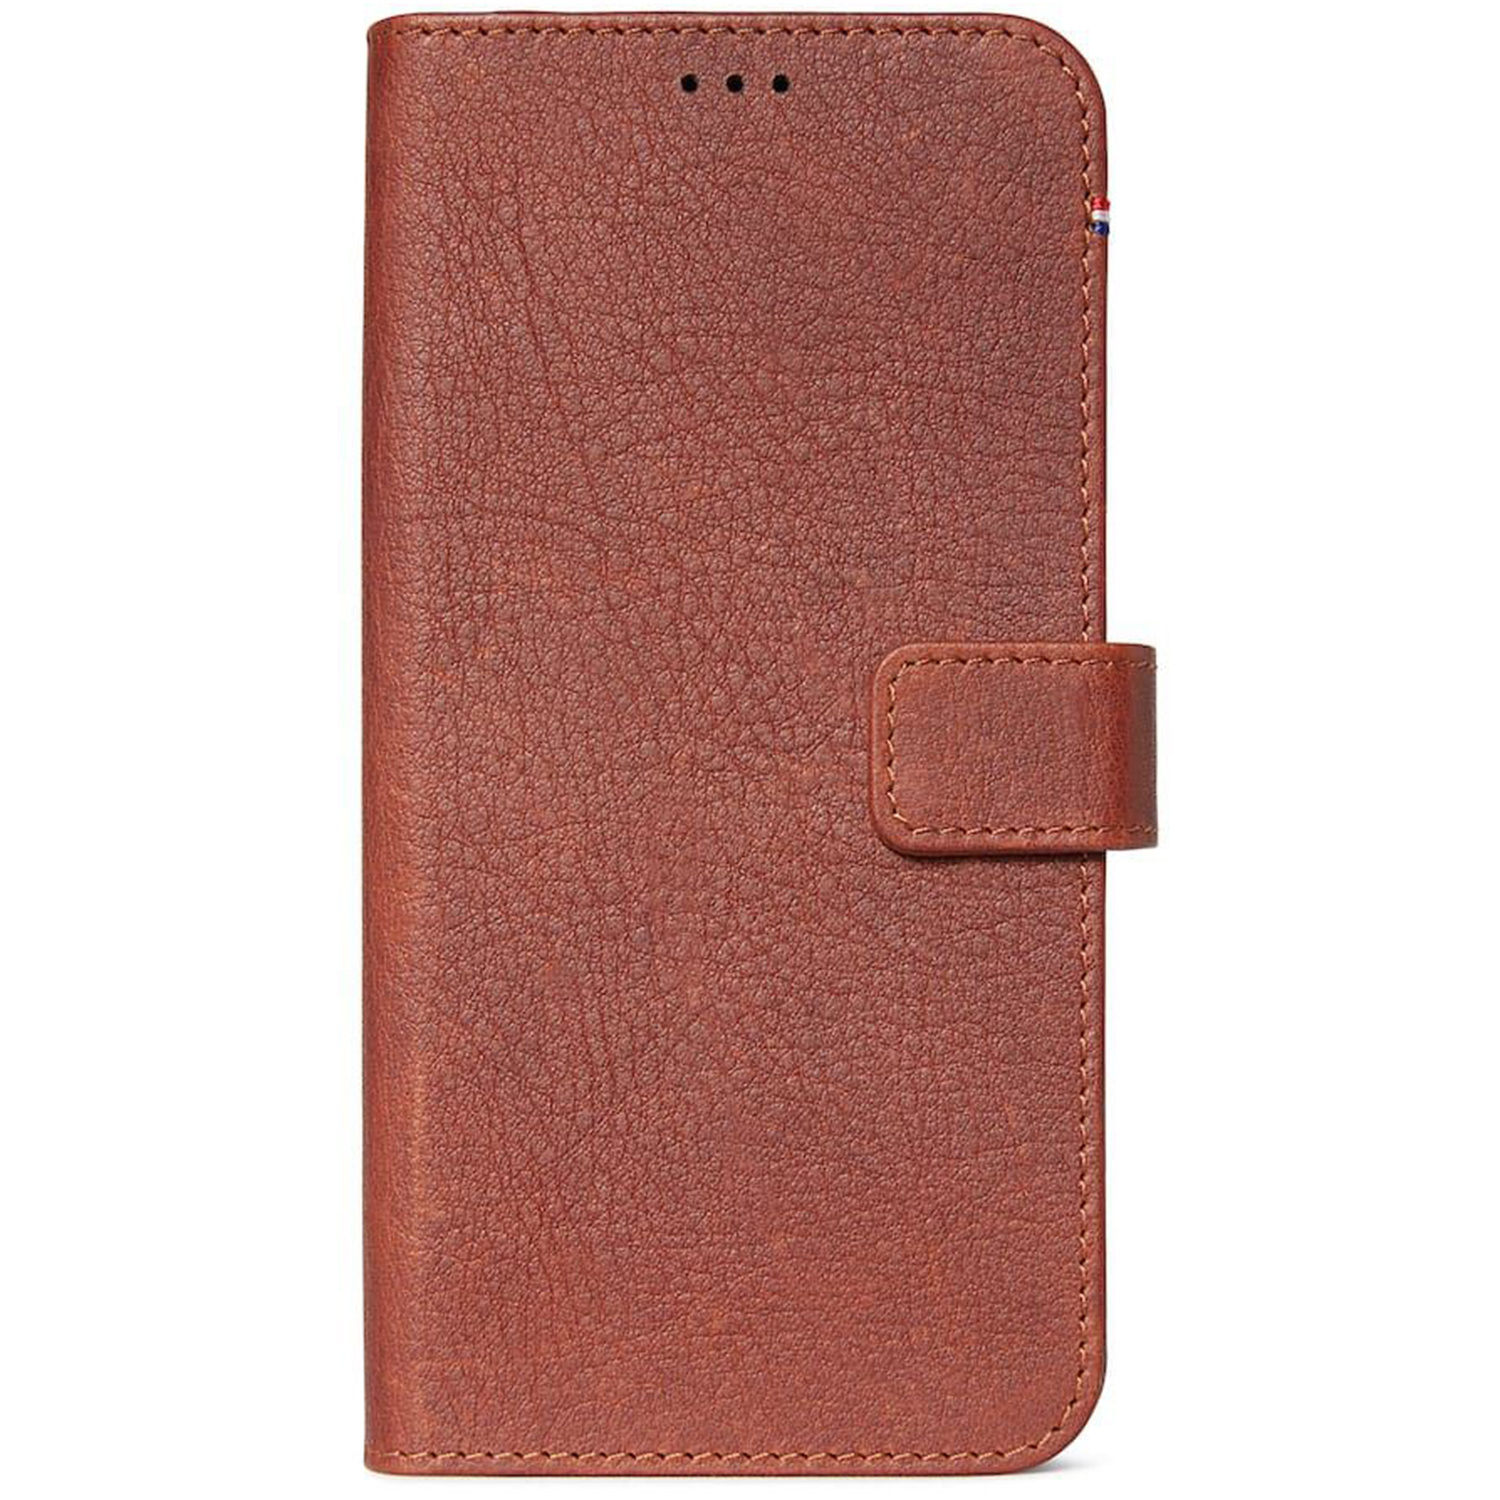 Decoded 2 in 1 Leather Booktype Braun iPhone 11 Pro